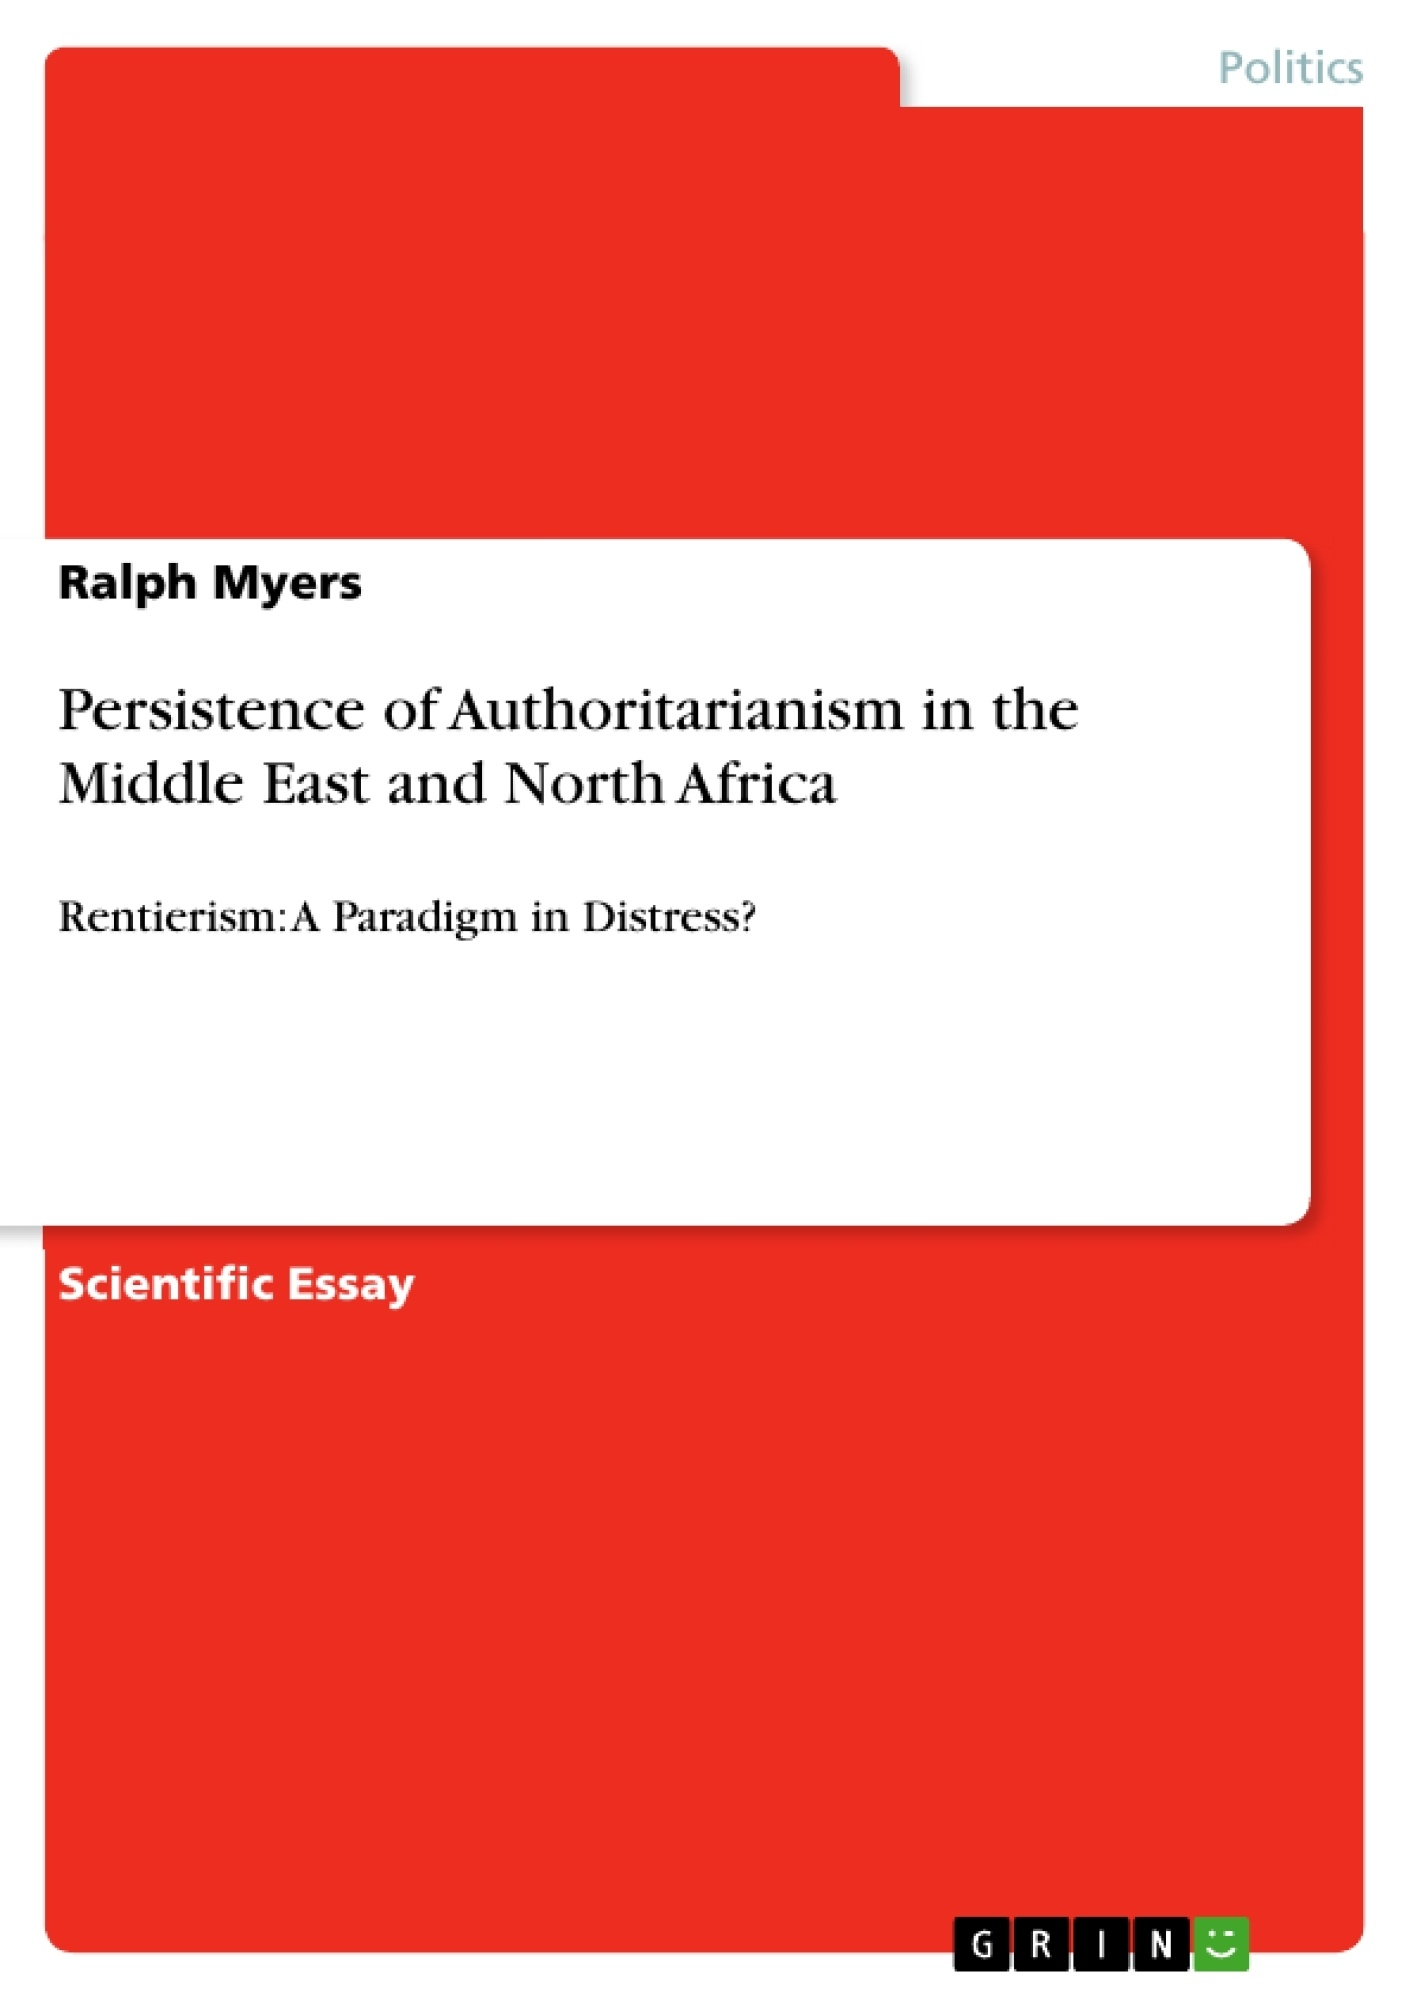 Title: Persistence of Authoritarianism in the Middle East and North Africa